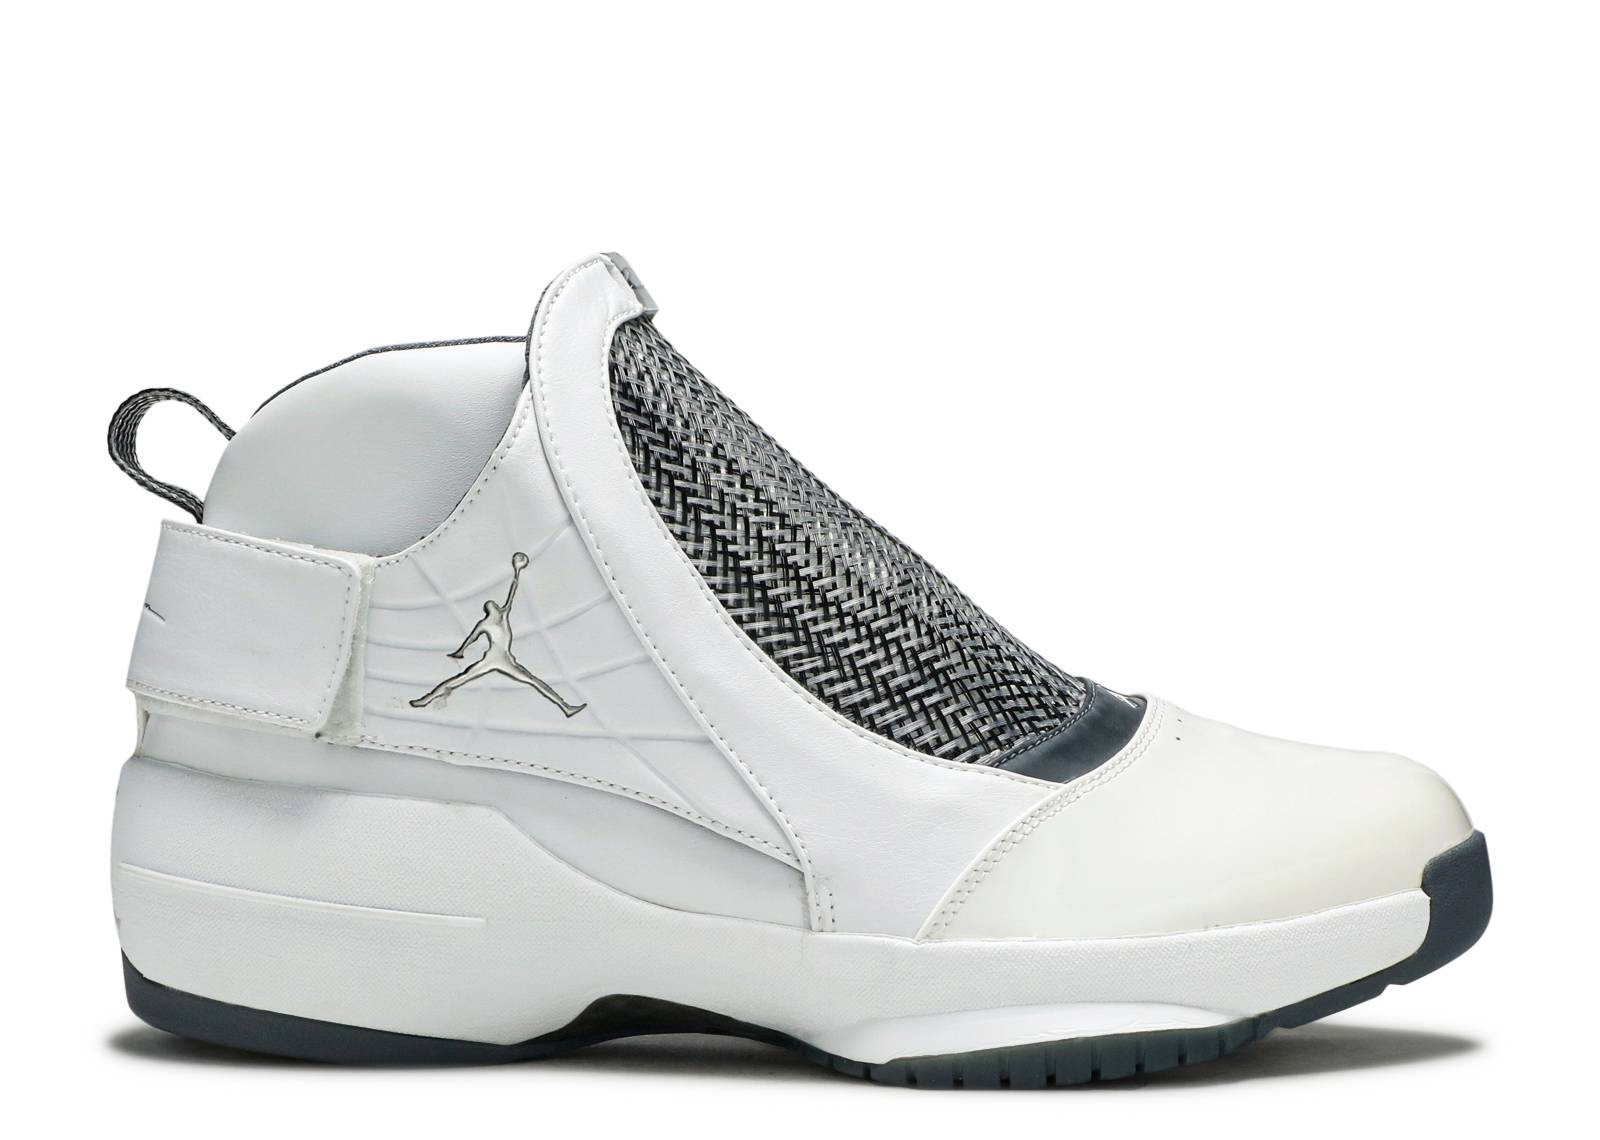 055368e05fac68 Air Jordan 19 - Air Jordan - 307546 102 - white chrome-flint grey ...